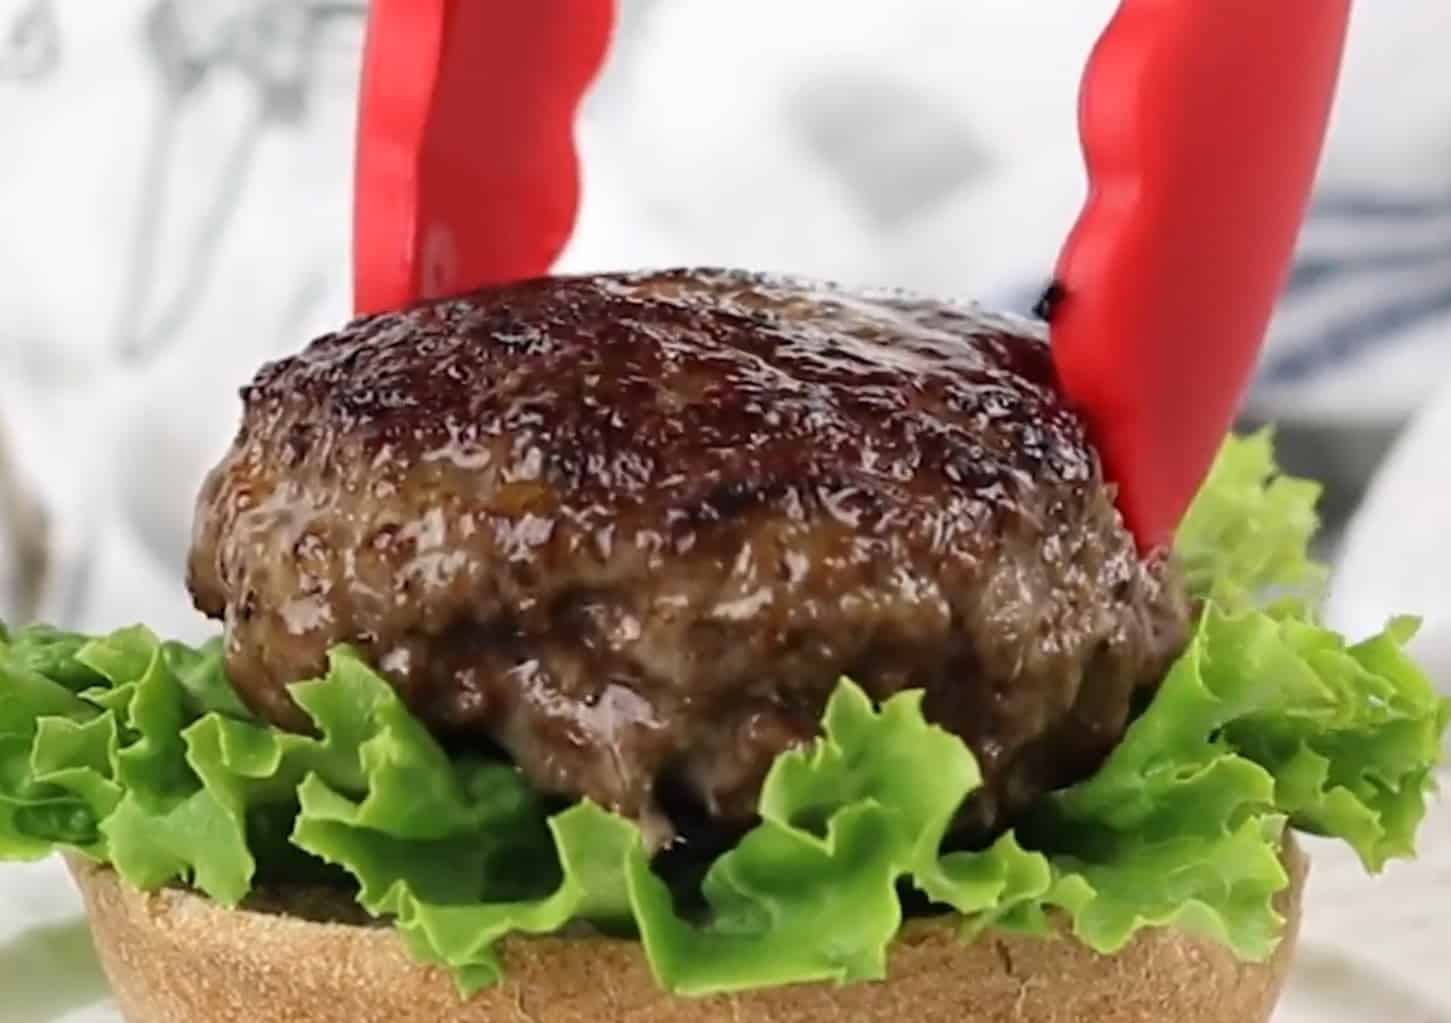 How to make hamburger patties with deer meat